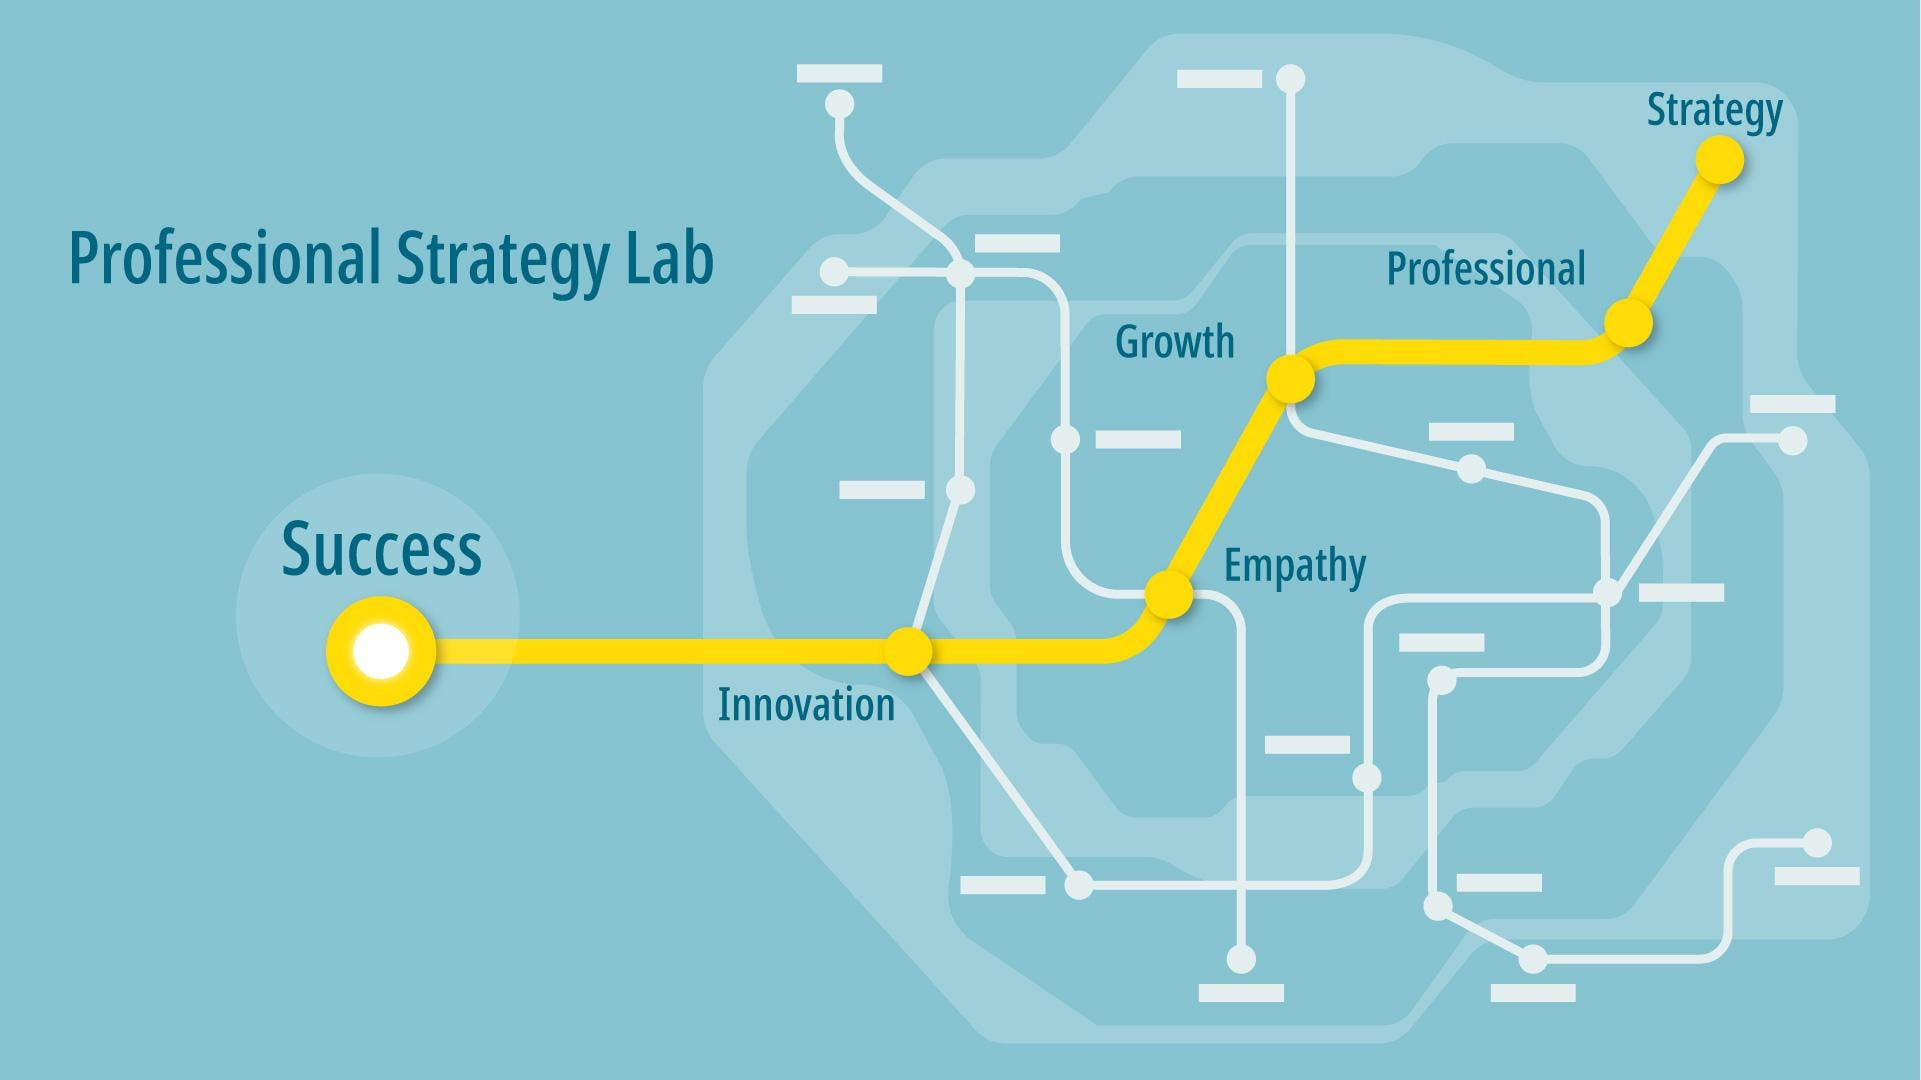 Professional Strategy Lab